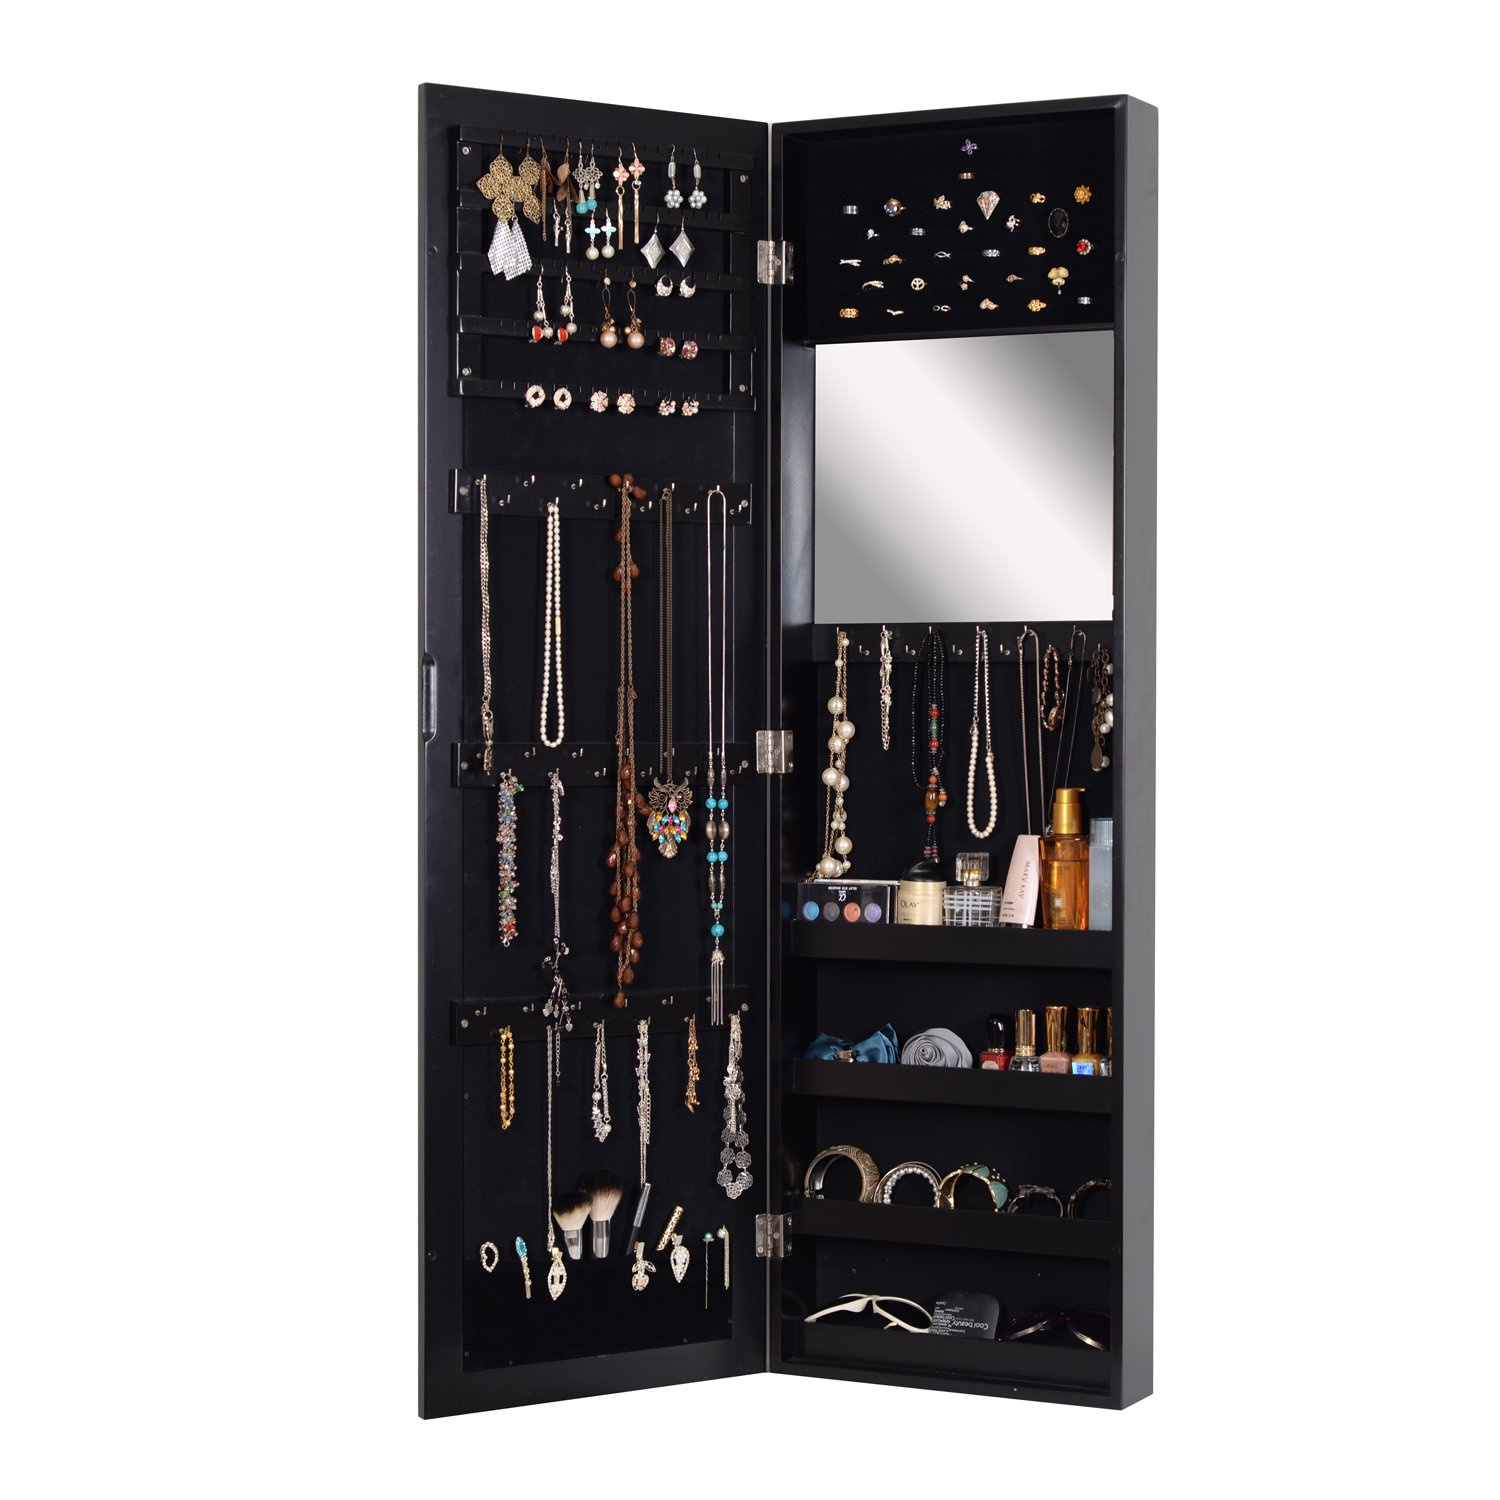 Organizedlife Black Wall Mounted Black Jewelry Armoire Cabinet with Mirror Bedroom Furniture